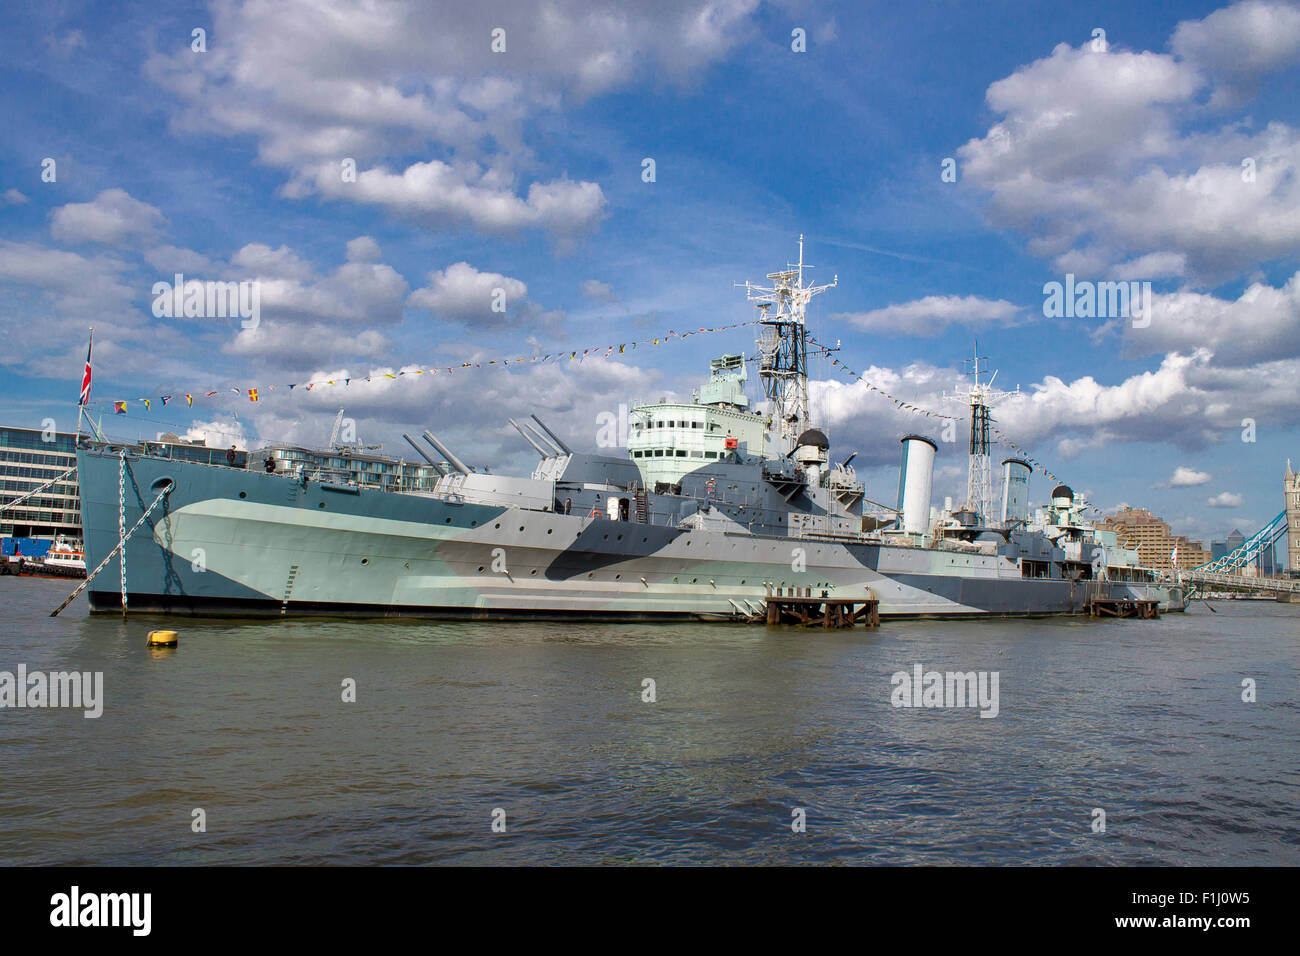 HMS Belfast, famous warship on River Thames. London City on a background. Tourists walking on the deck of the ship. - Stock Image